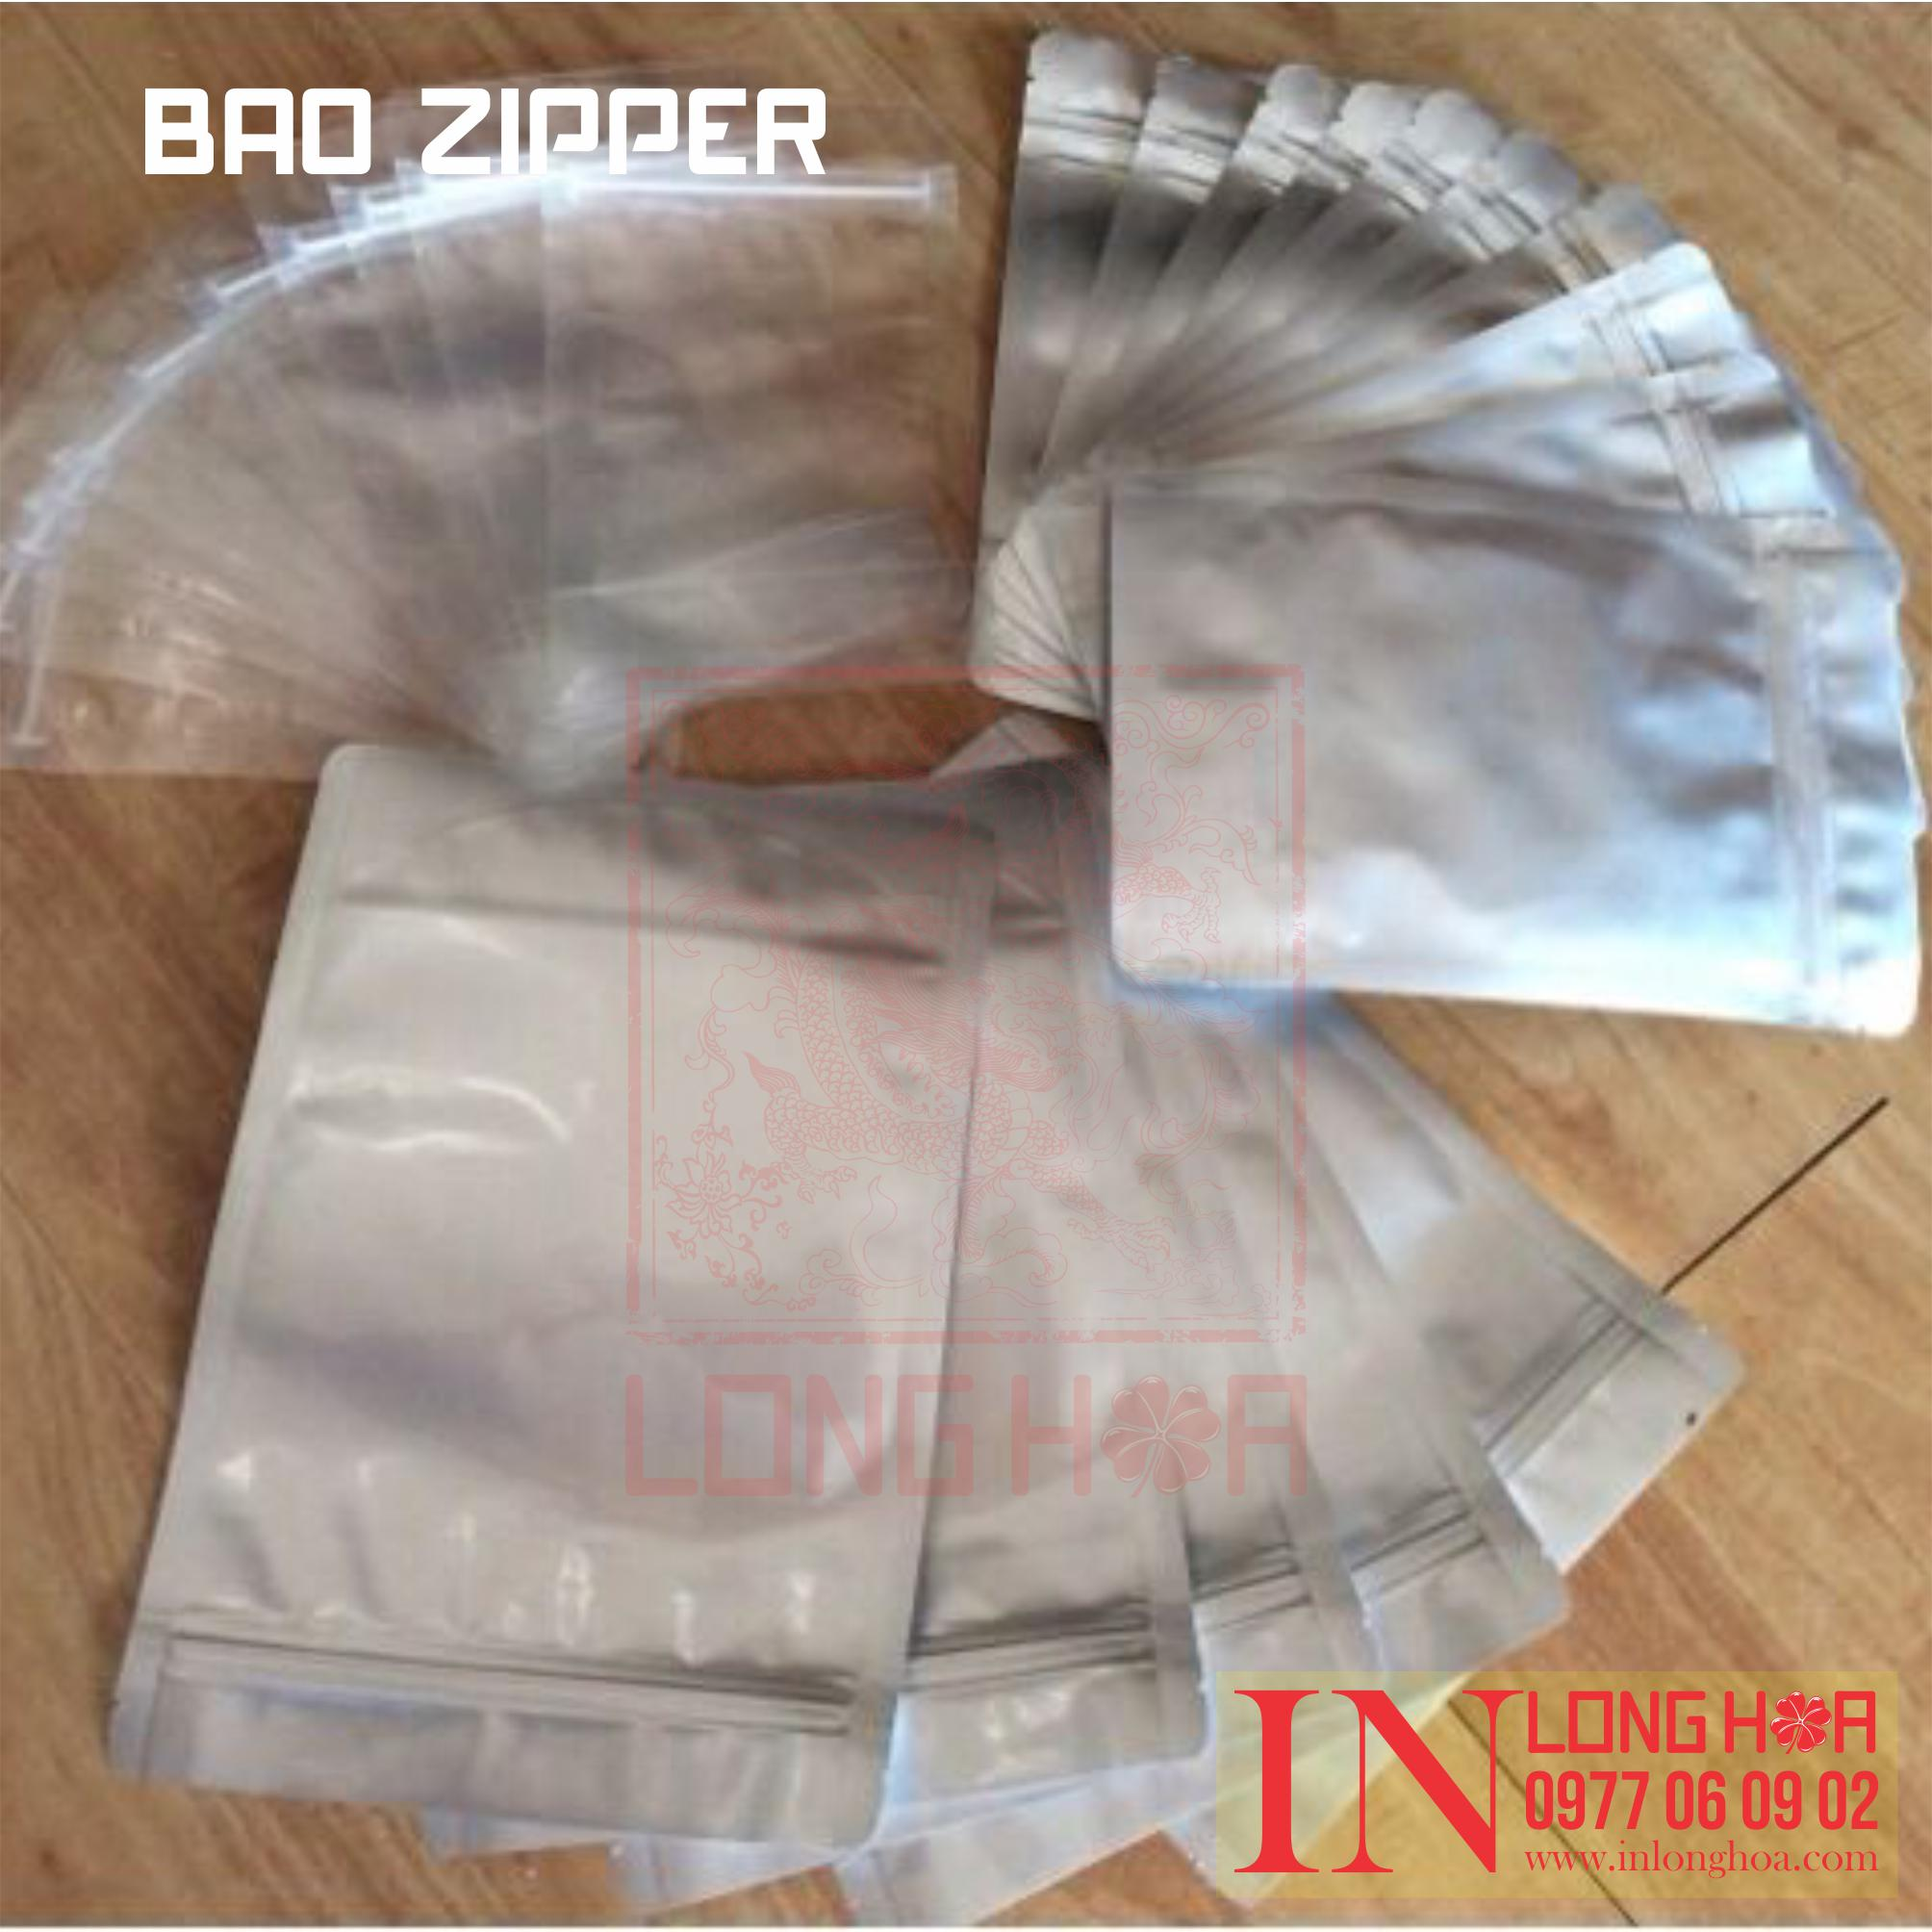 in gi re ti zipper giay kraft, in gi re ti zipper bang giay, ti zipper in gi re, in gi re ti zipper giay y ung, in gi re ti zipper tphcm